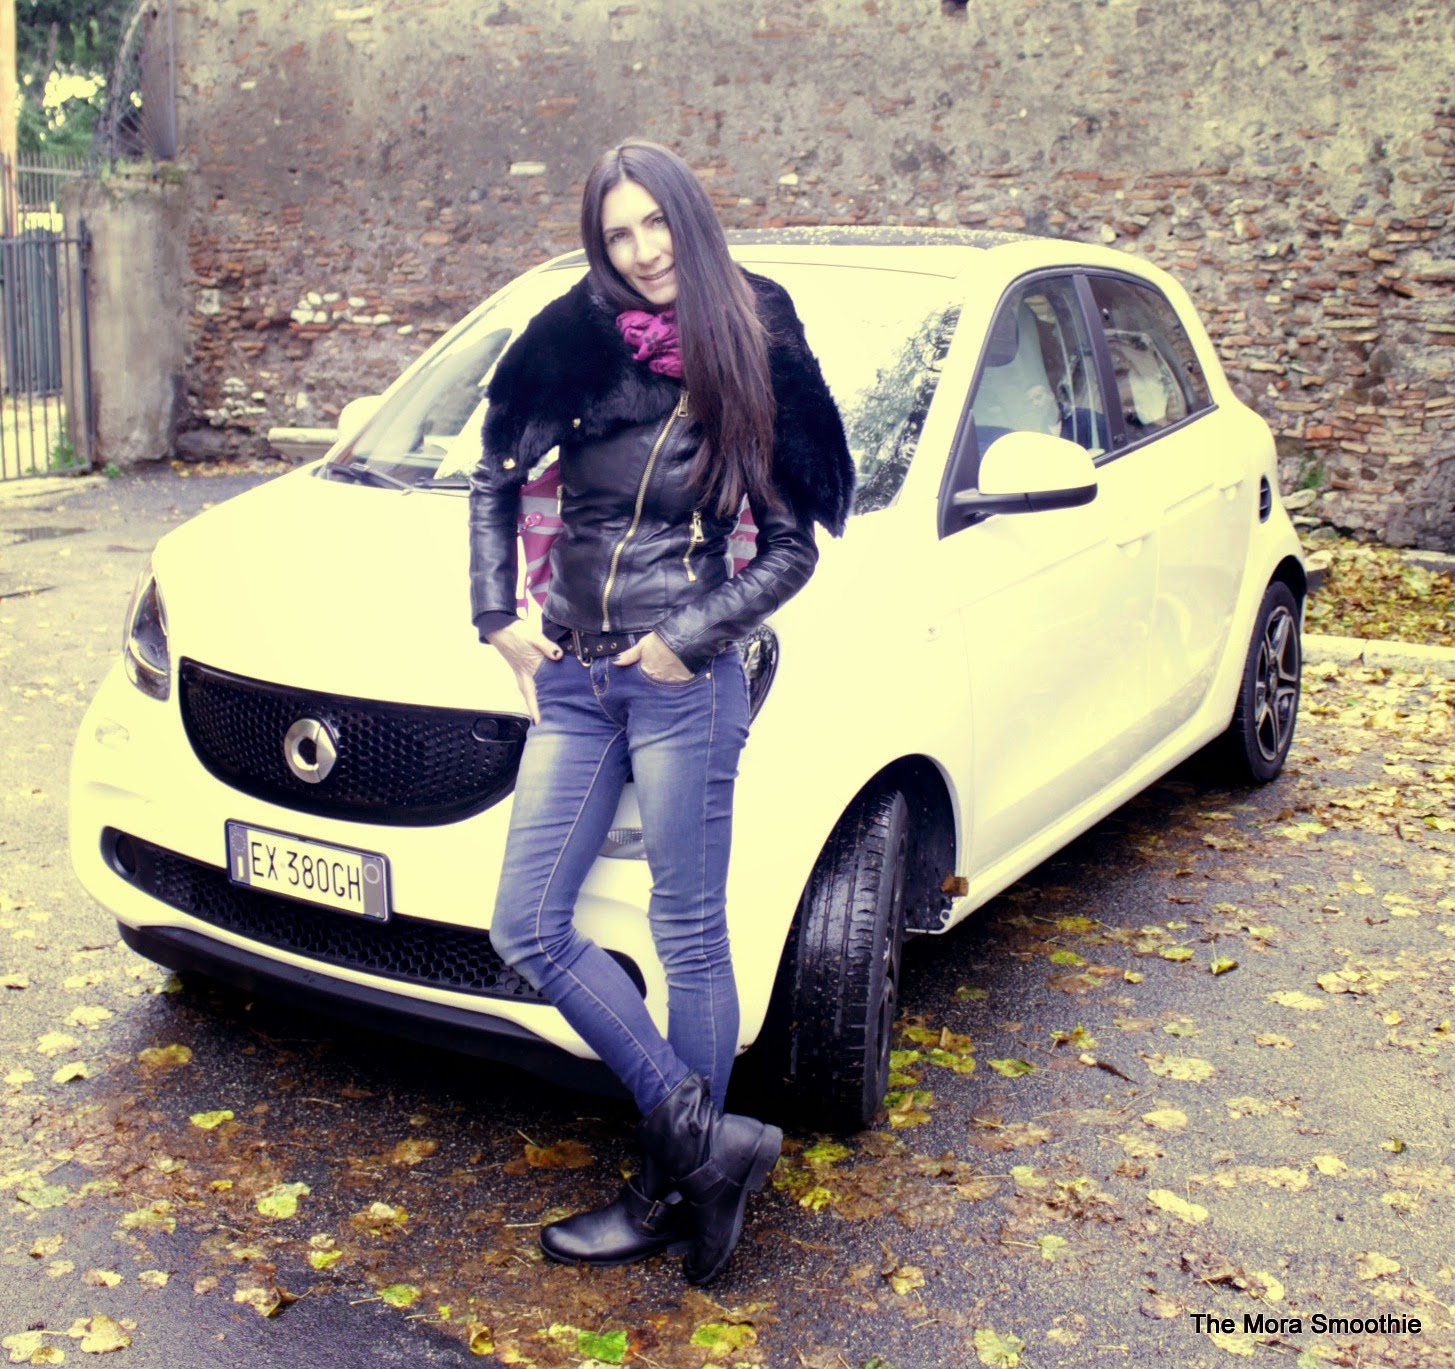 themorasmoothie, mercedesbenz, smart forfour, smartfortwo, fashion, fashiontest, fashionblog, fashionblogger, korakor, ynot, louisvuitton, fblog, ootd, look, outfit, girl, model, car, fashion car,